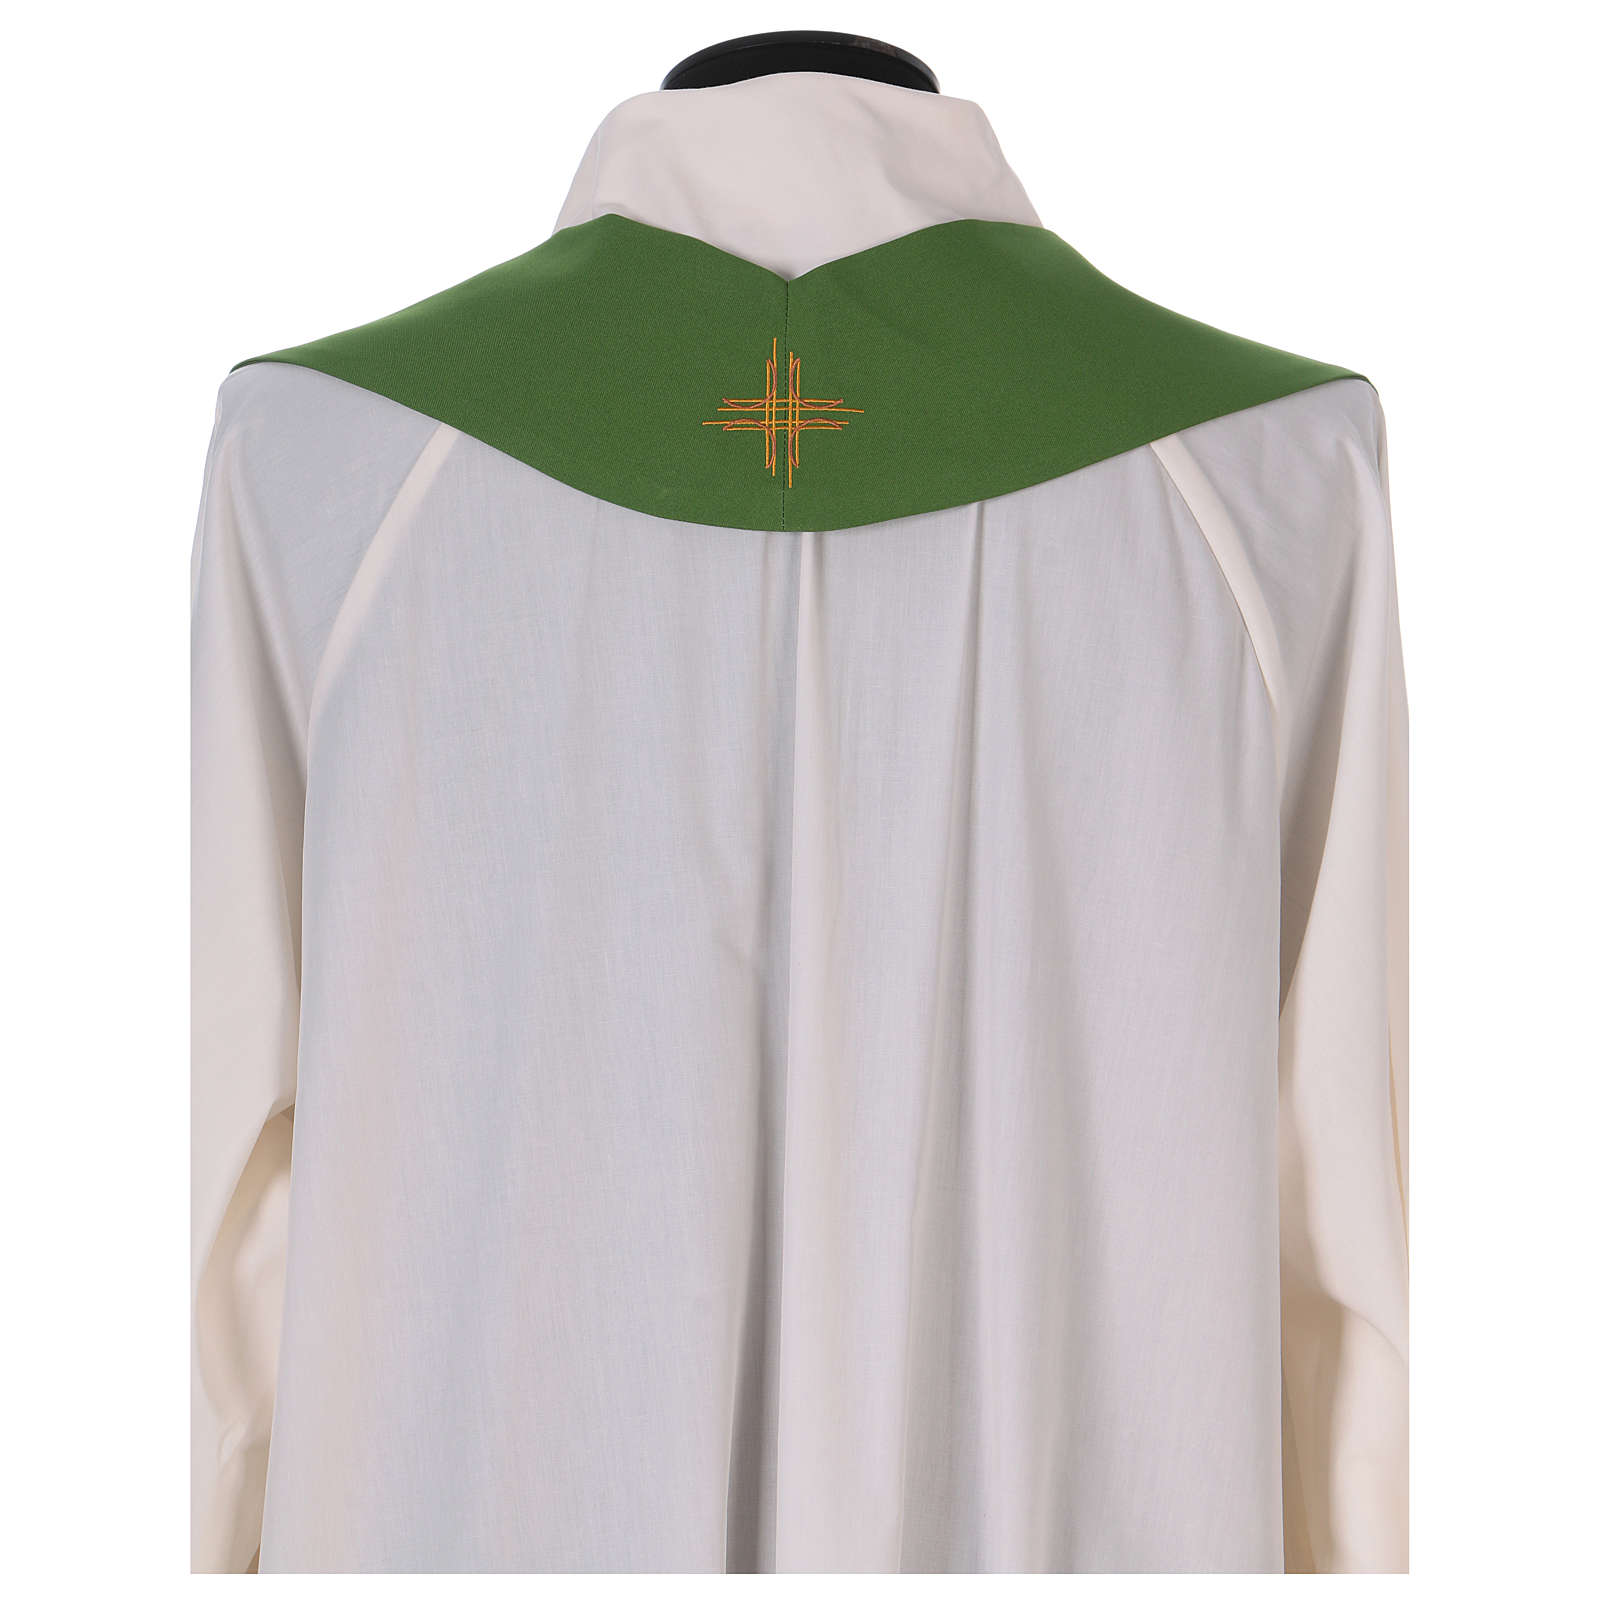 Monastic Chasuble in polyester with decorated gallon 4